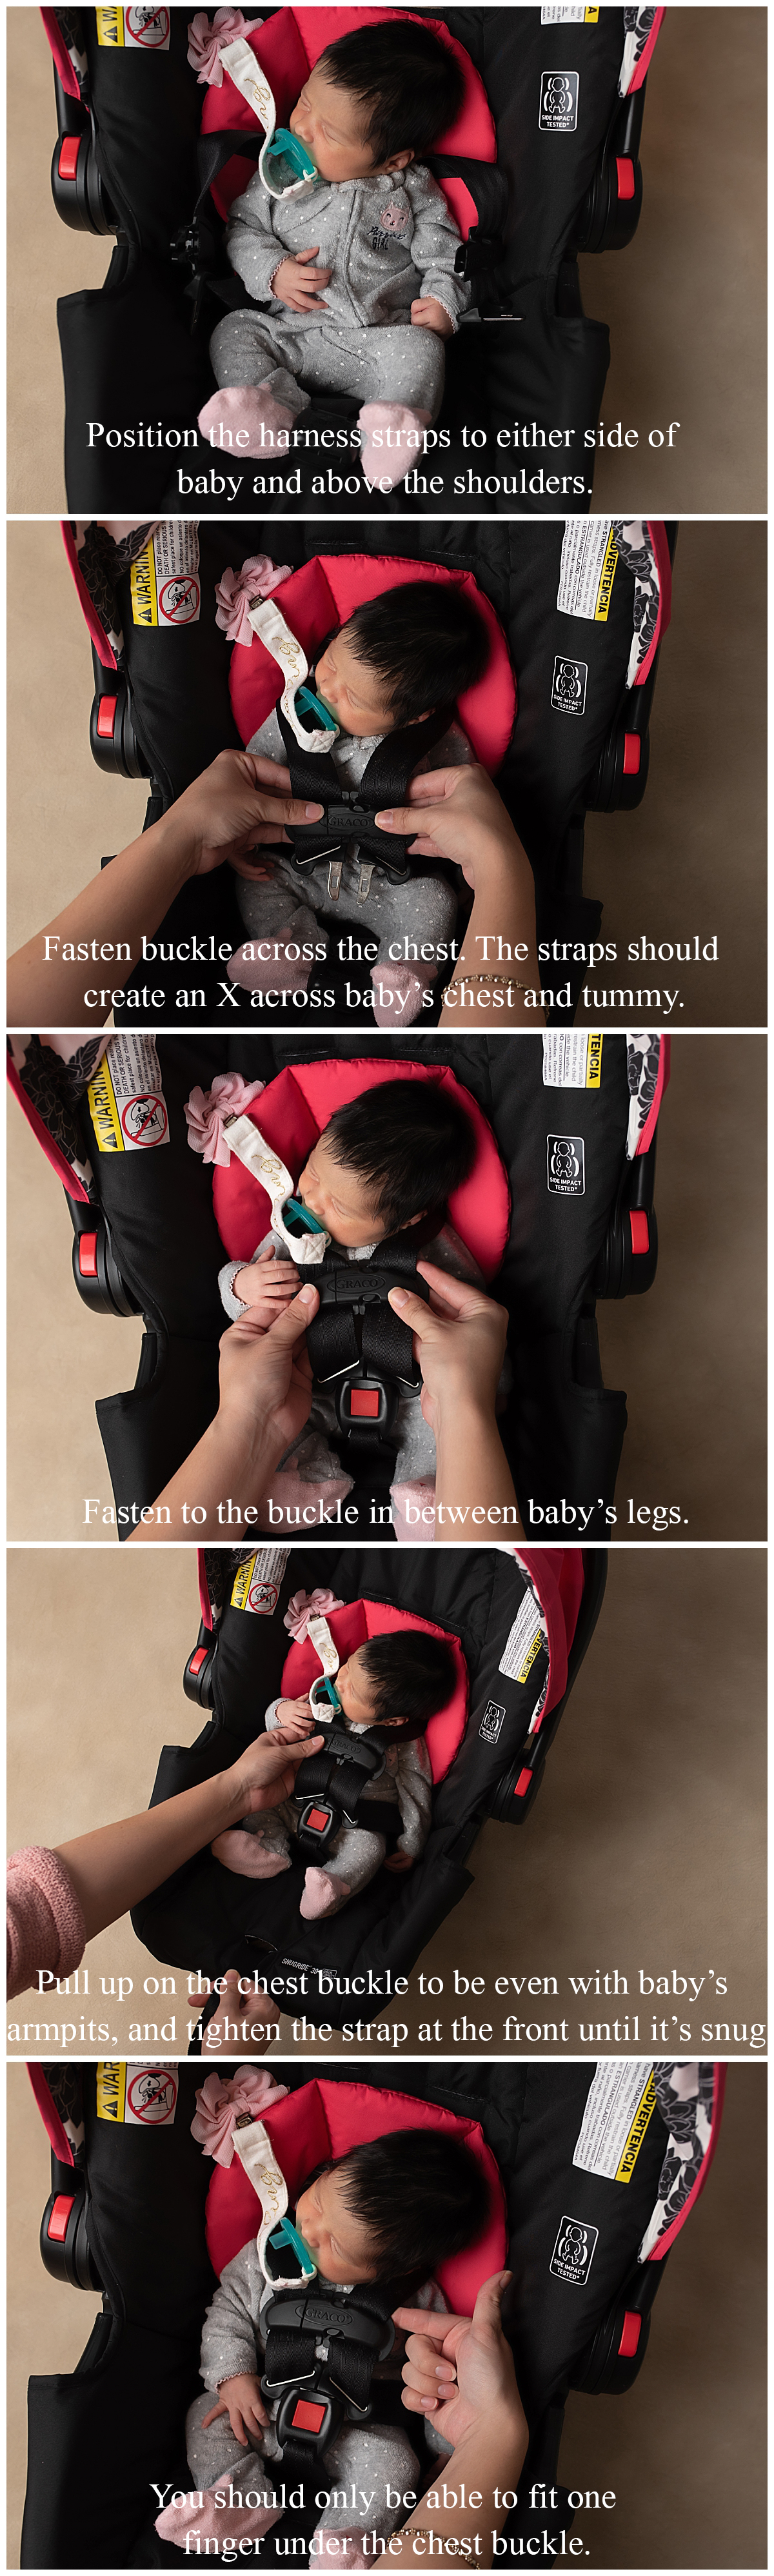 Car Seat Safety Demonstration